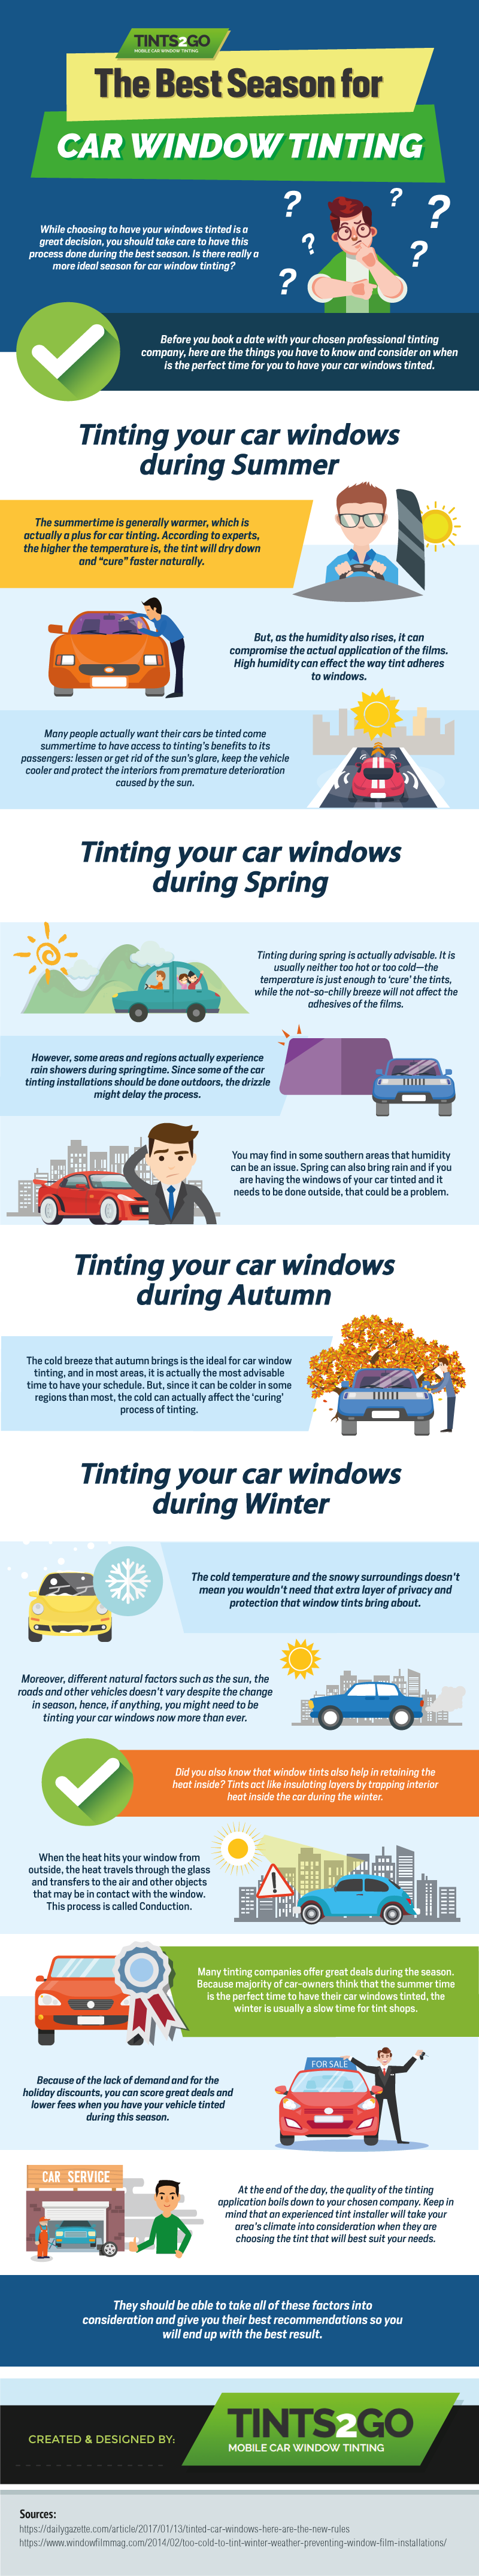 The best season for car window tinting